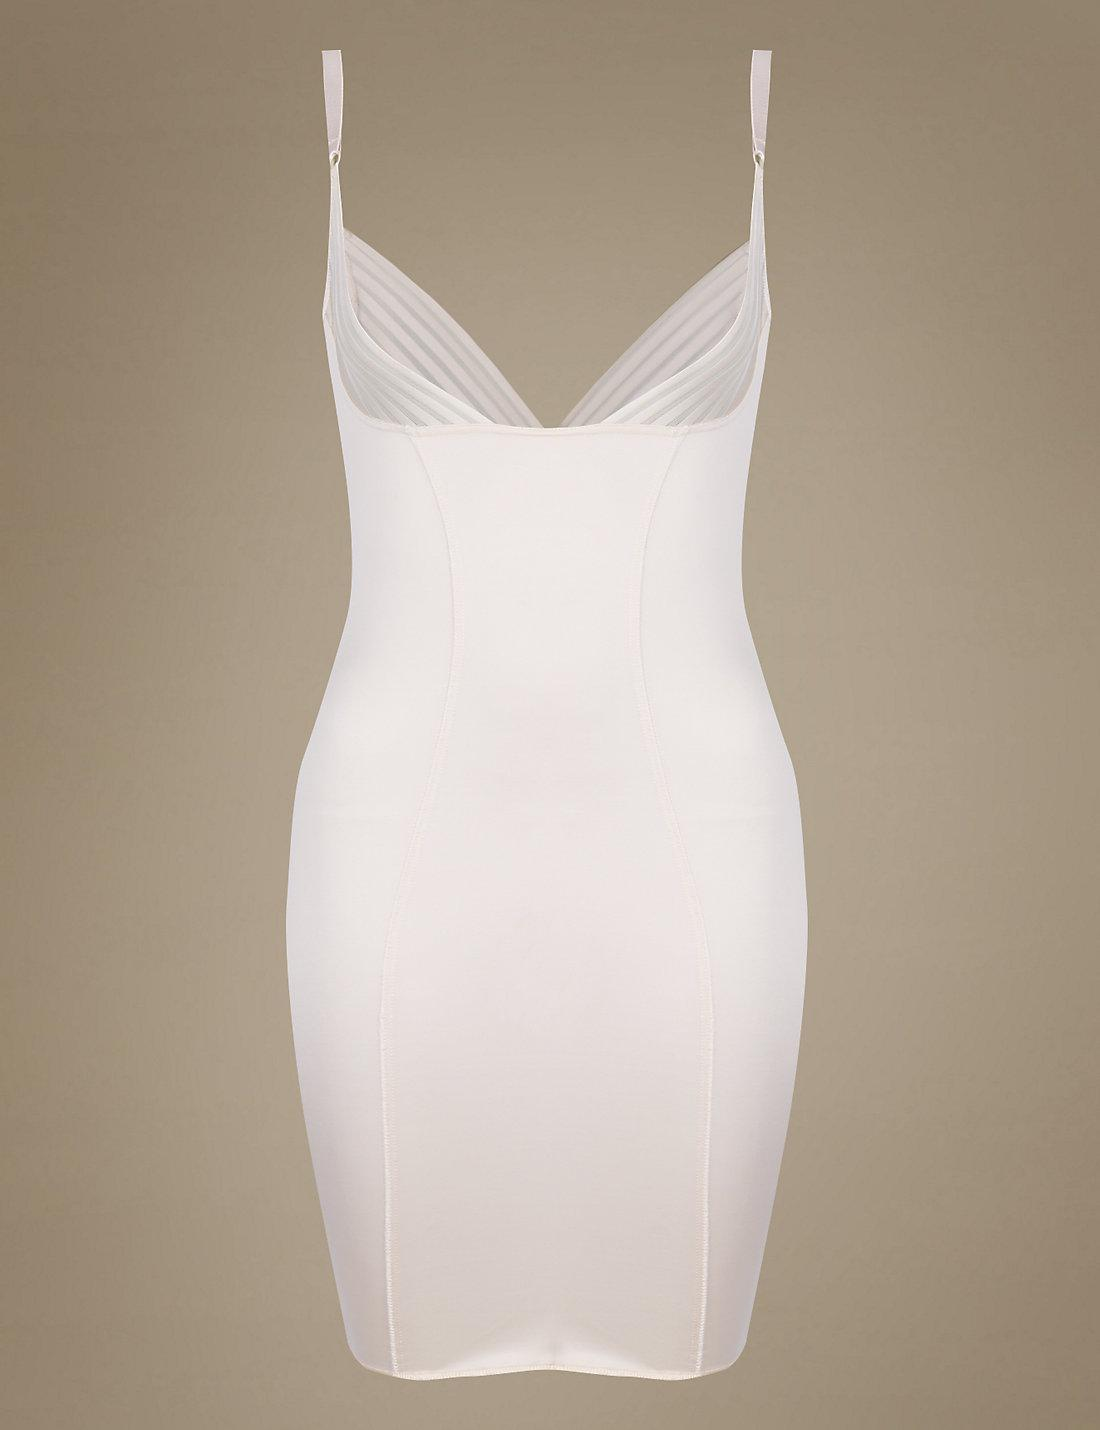 Marks spencer firm control wear your own bra slip in for Best bra for wedding dress